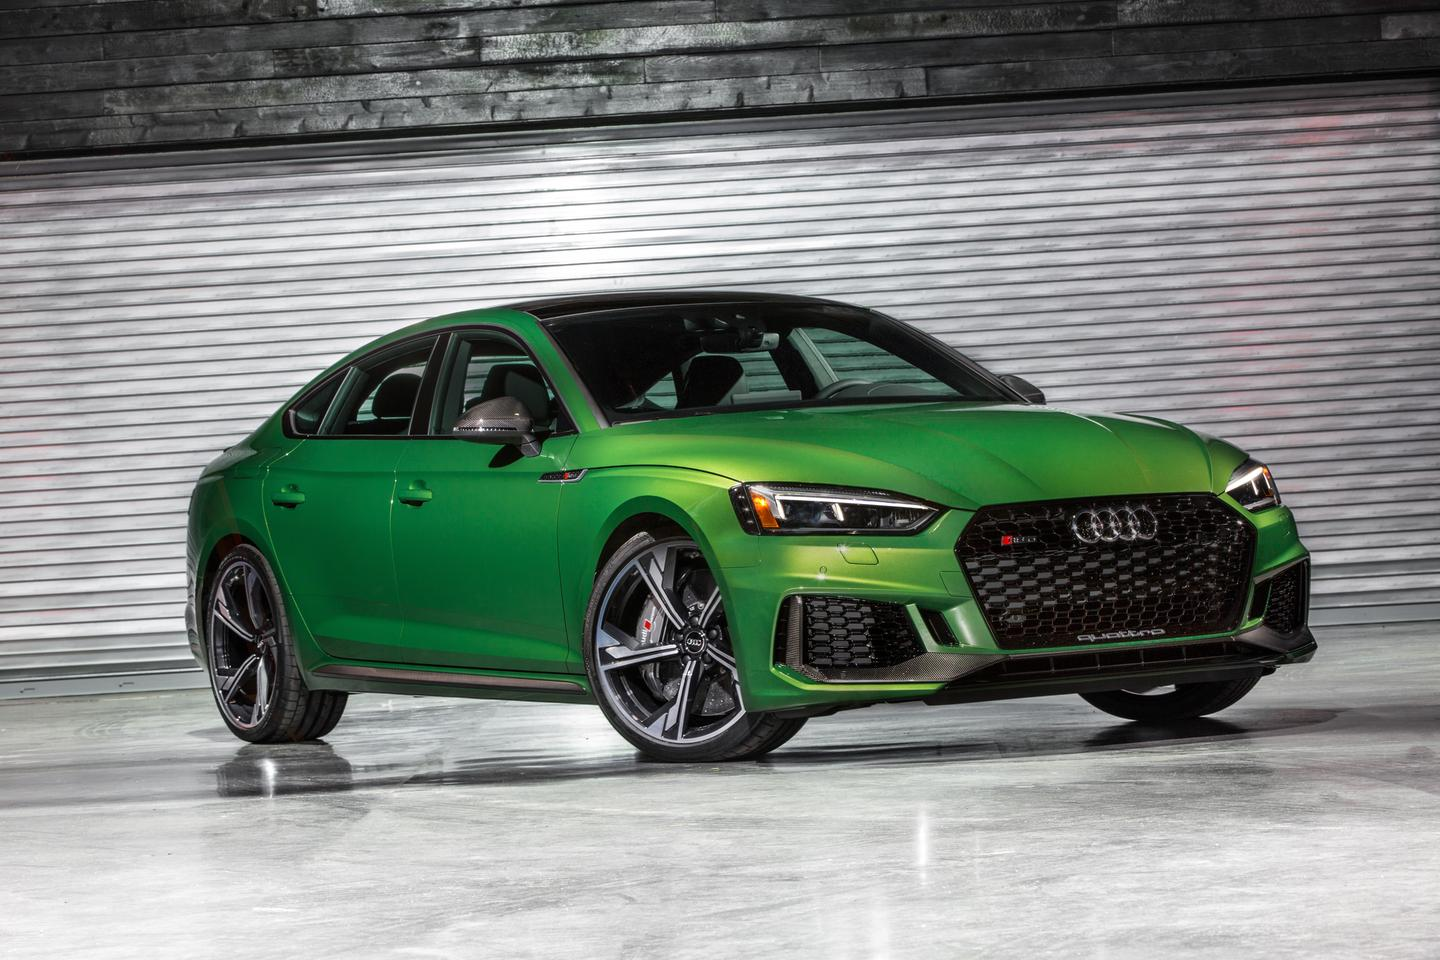 The design of the new Sportback is taken from the Audi 90 quattro IMSA GTO racer, befitting the RS name and Audi Sport family